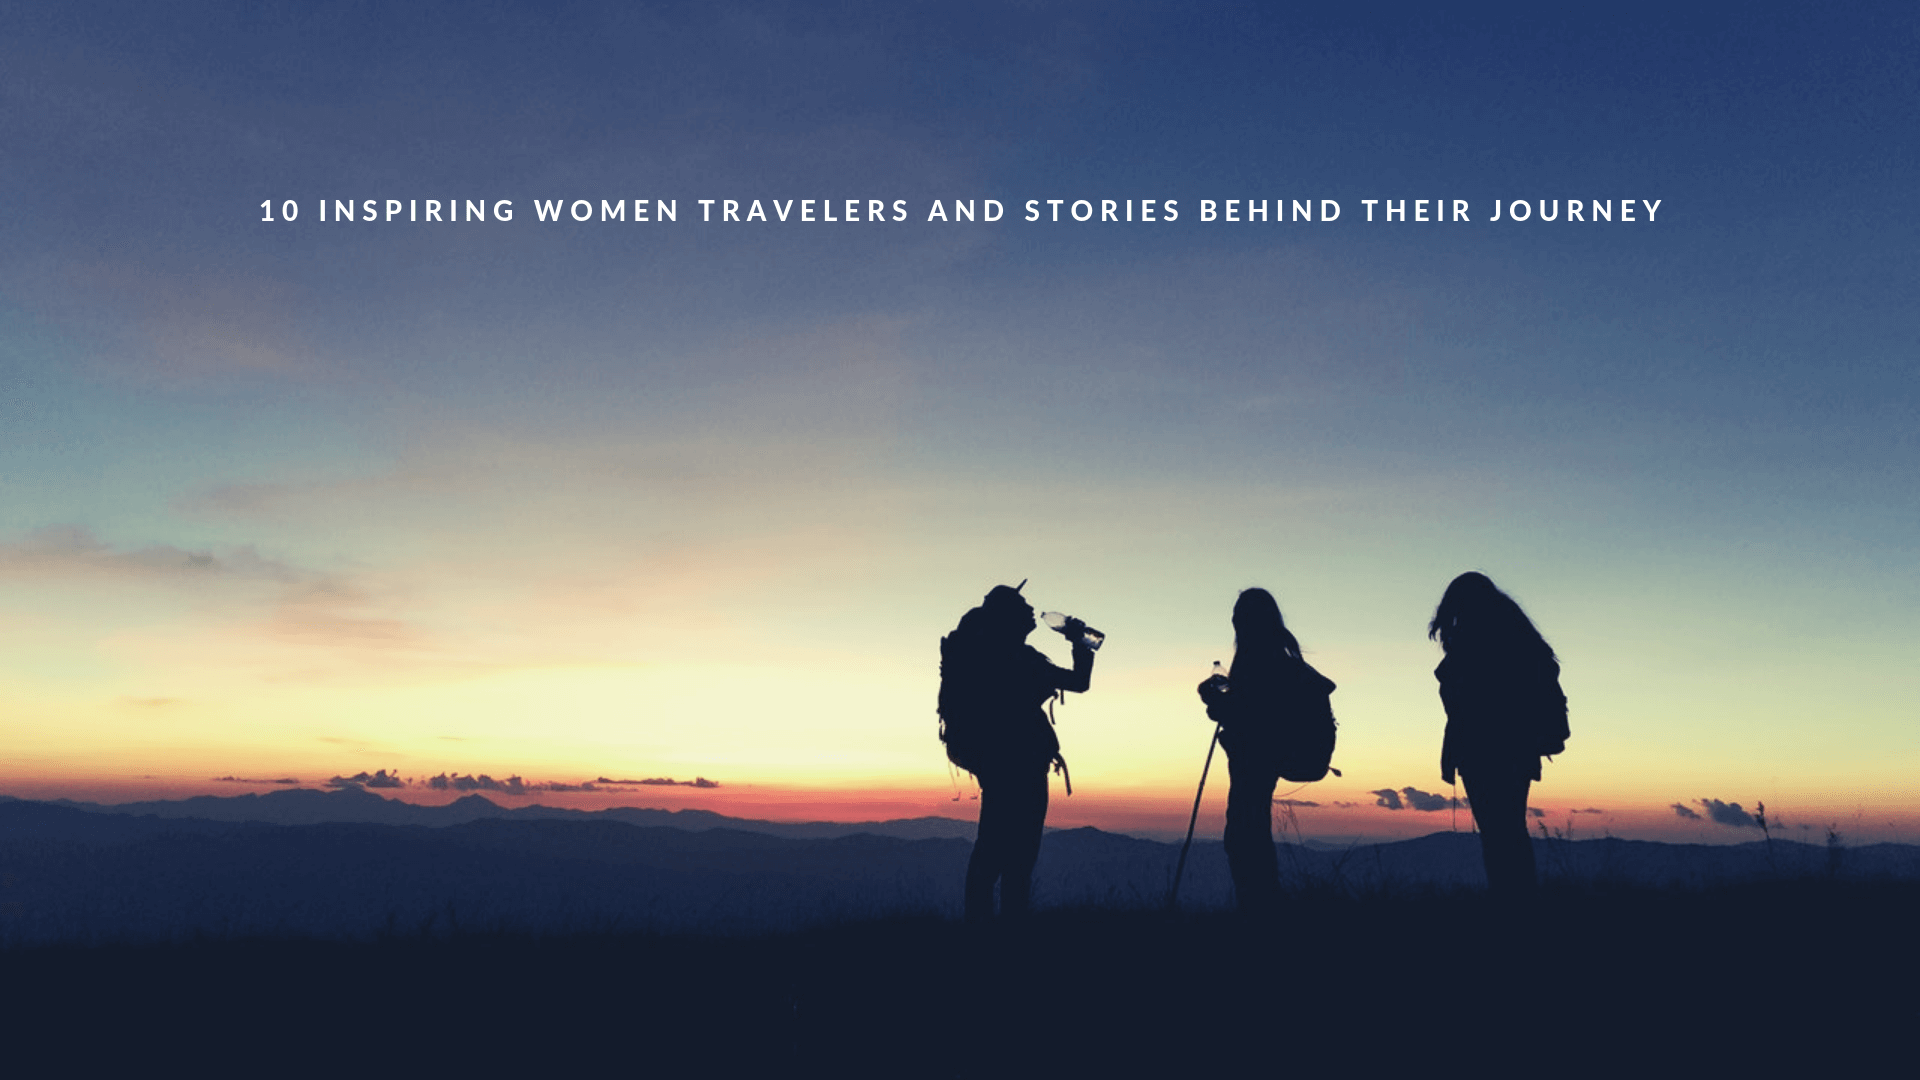 10 Inspiring Women Travelers and Stories Behind Their Journey